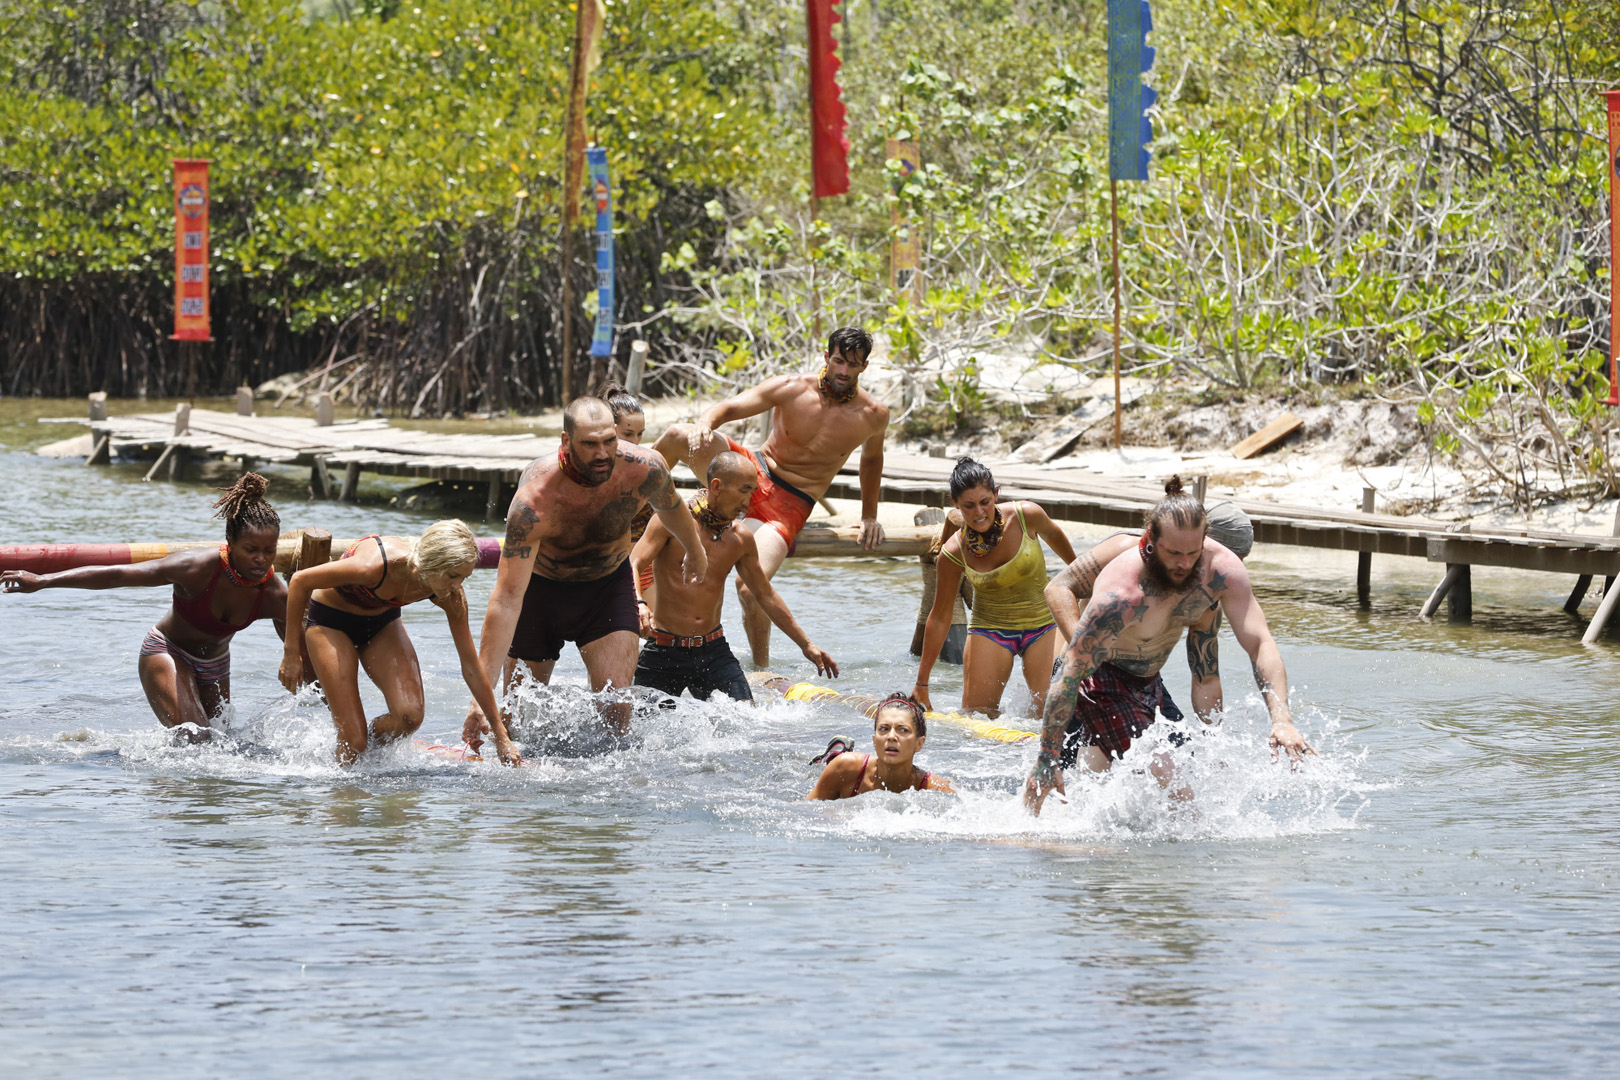 Combating the water proves to be difficult as these castaways compete for Immunity and Reward.